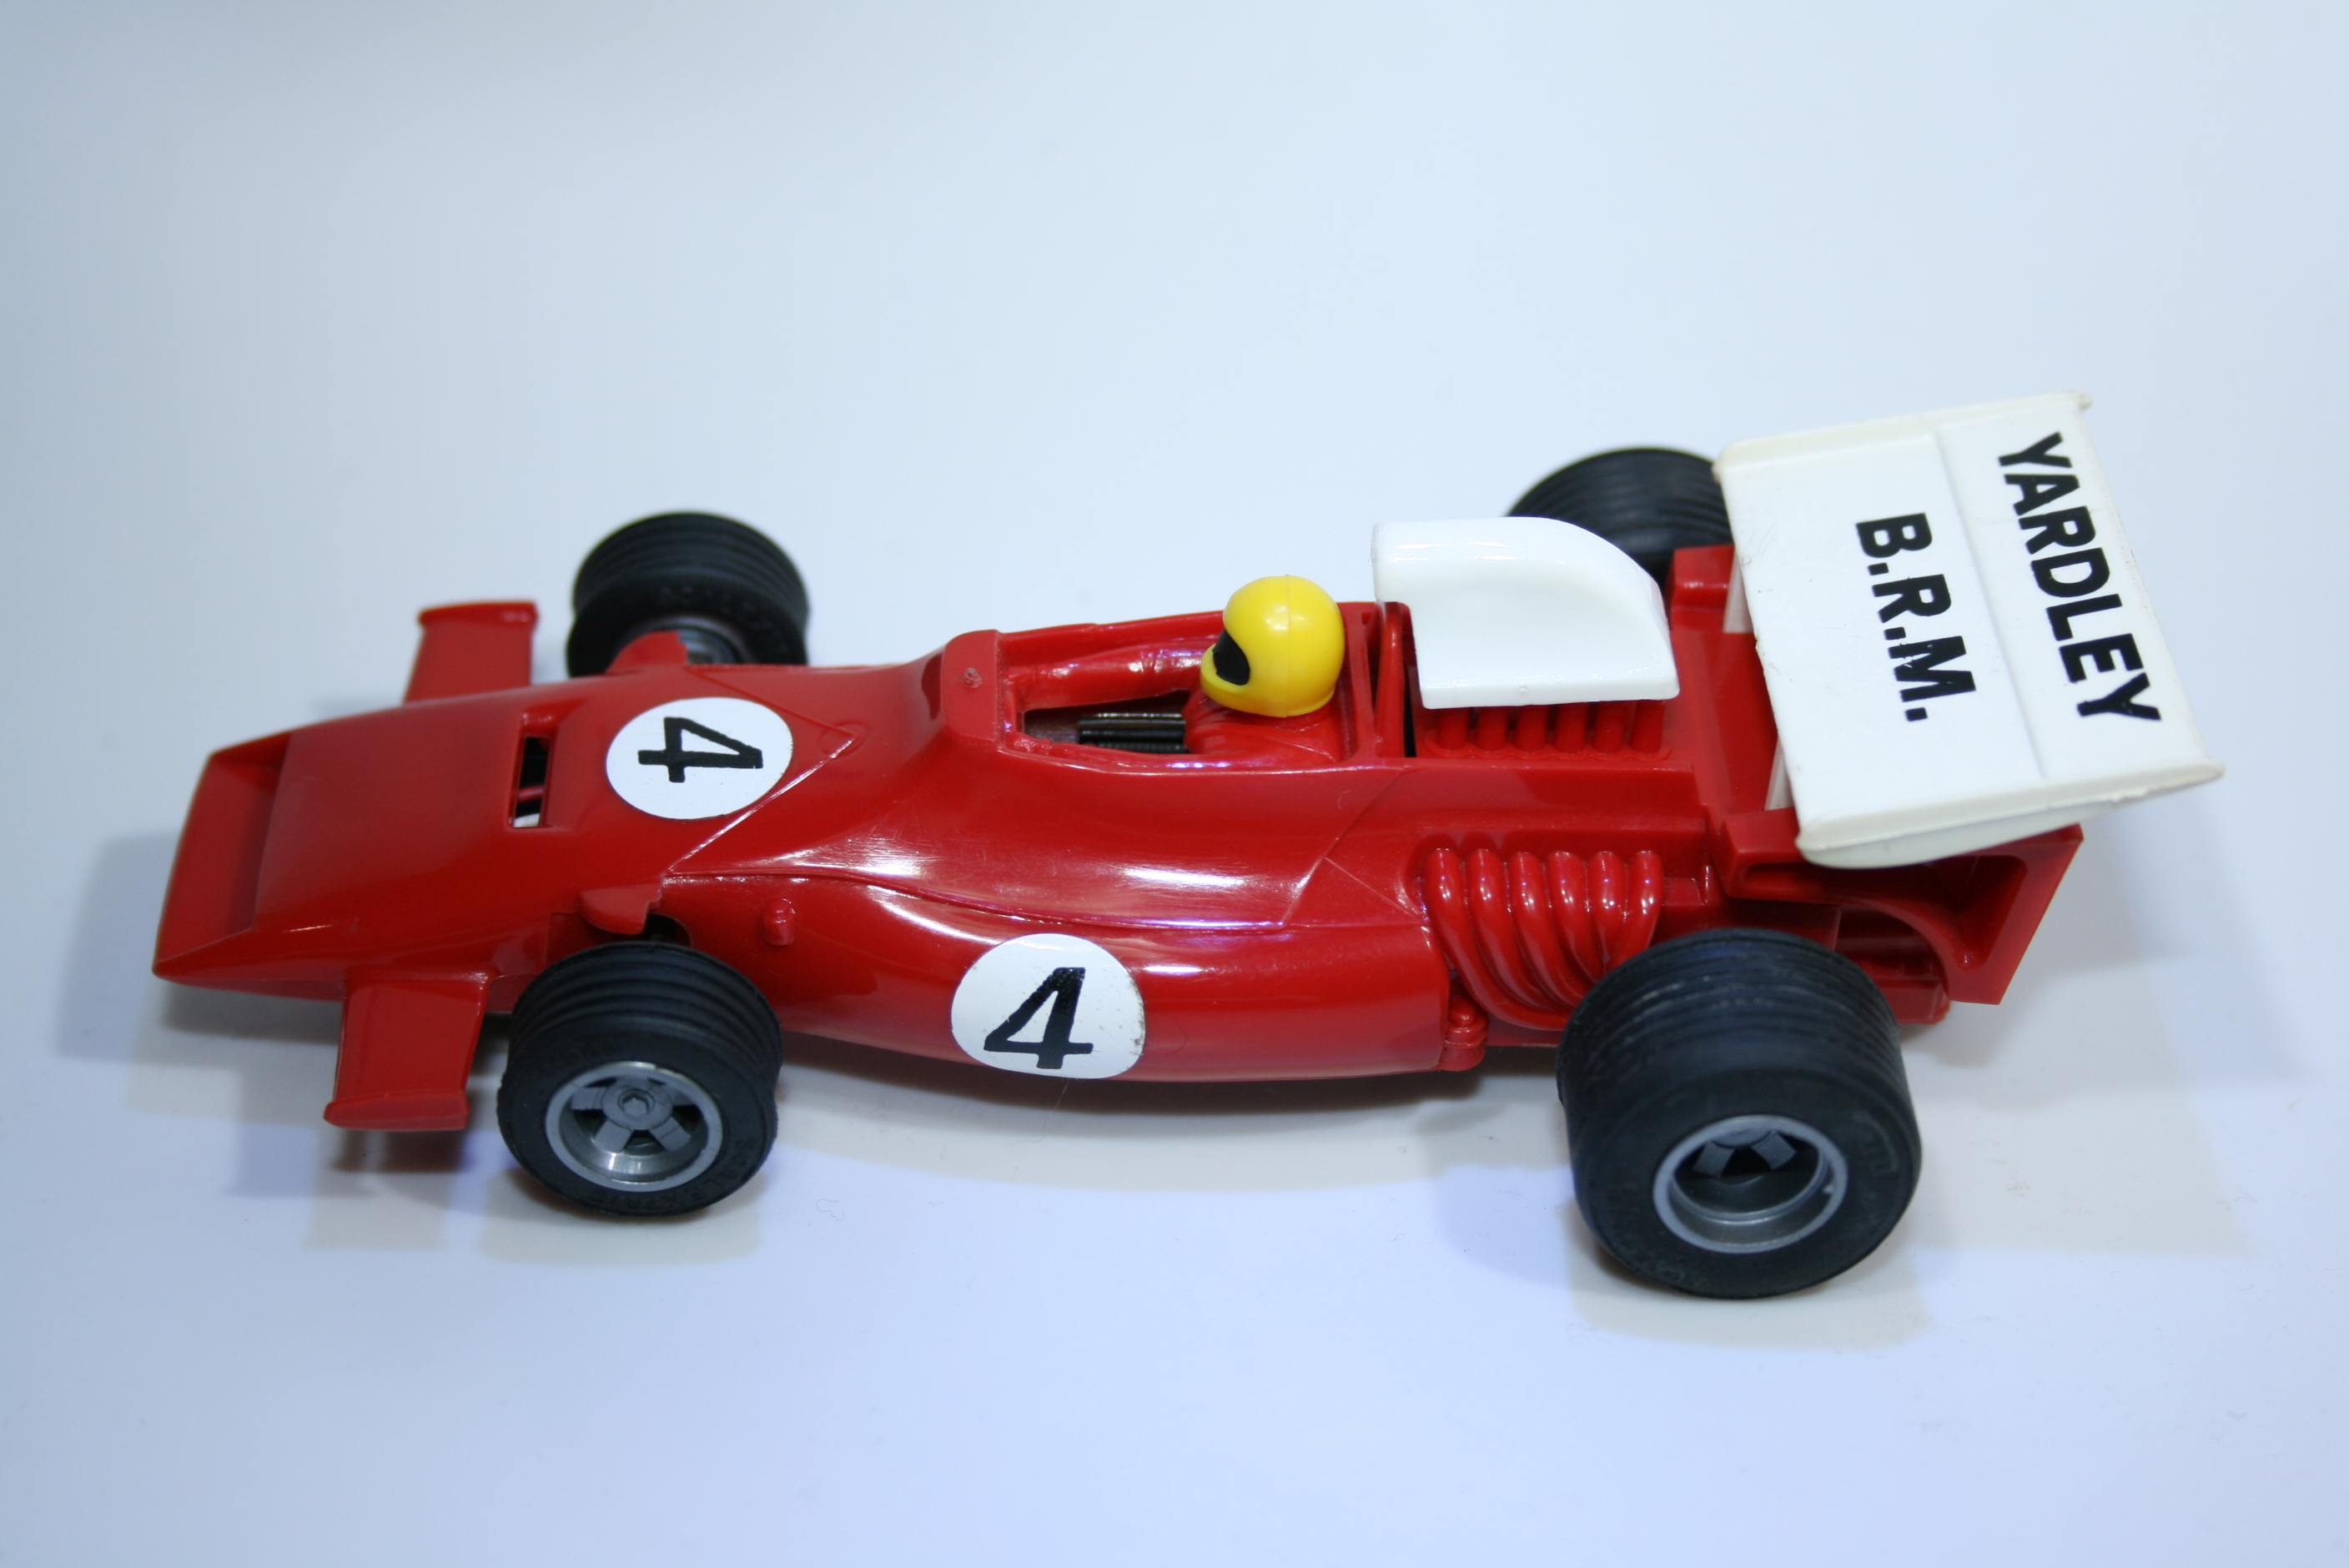 370 BRM P160 1971 - J Siffert Scalextric C051 1975 Boxed